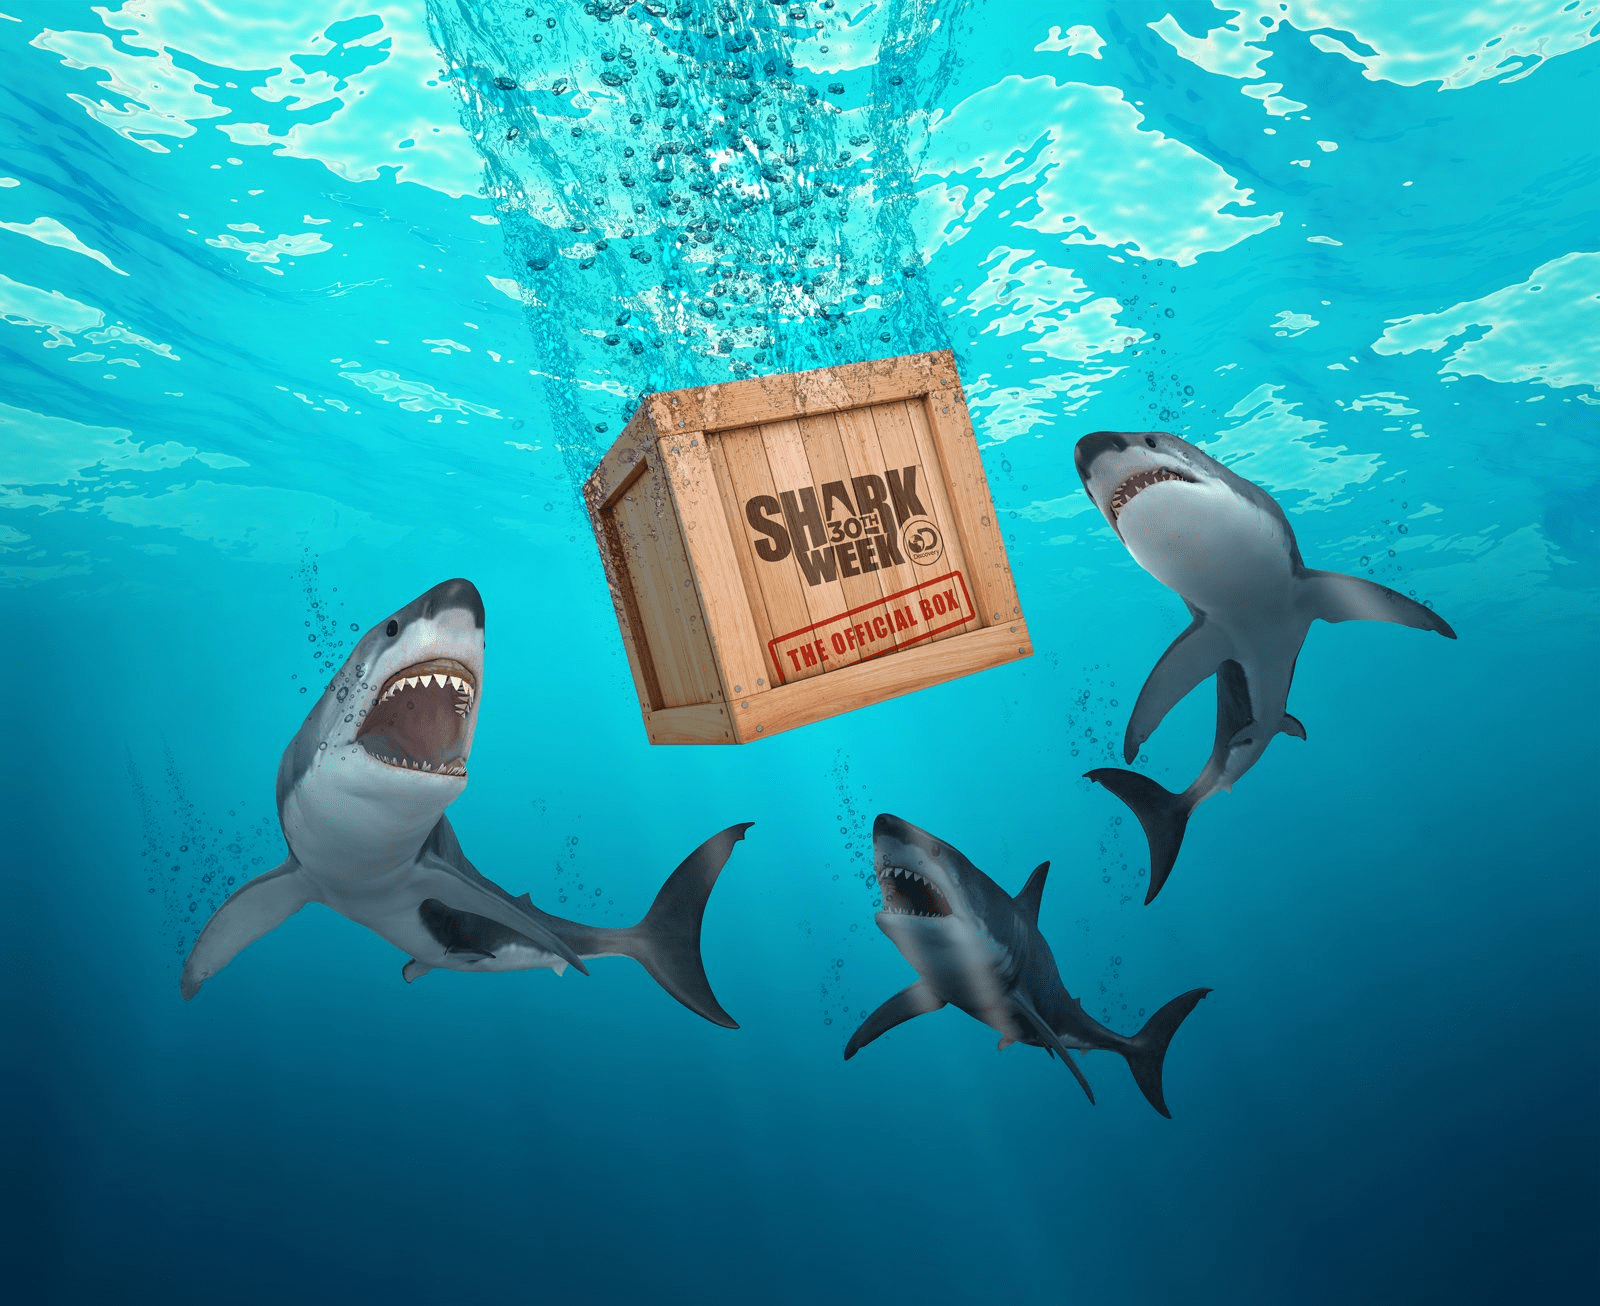 The Official Shark Week Box Now Available On Amazon